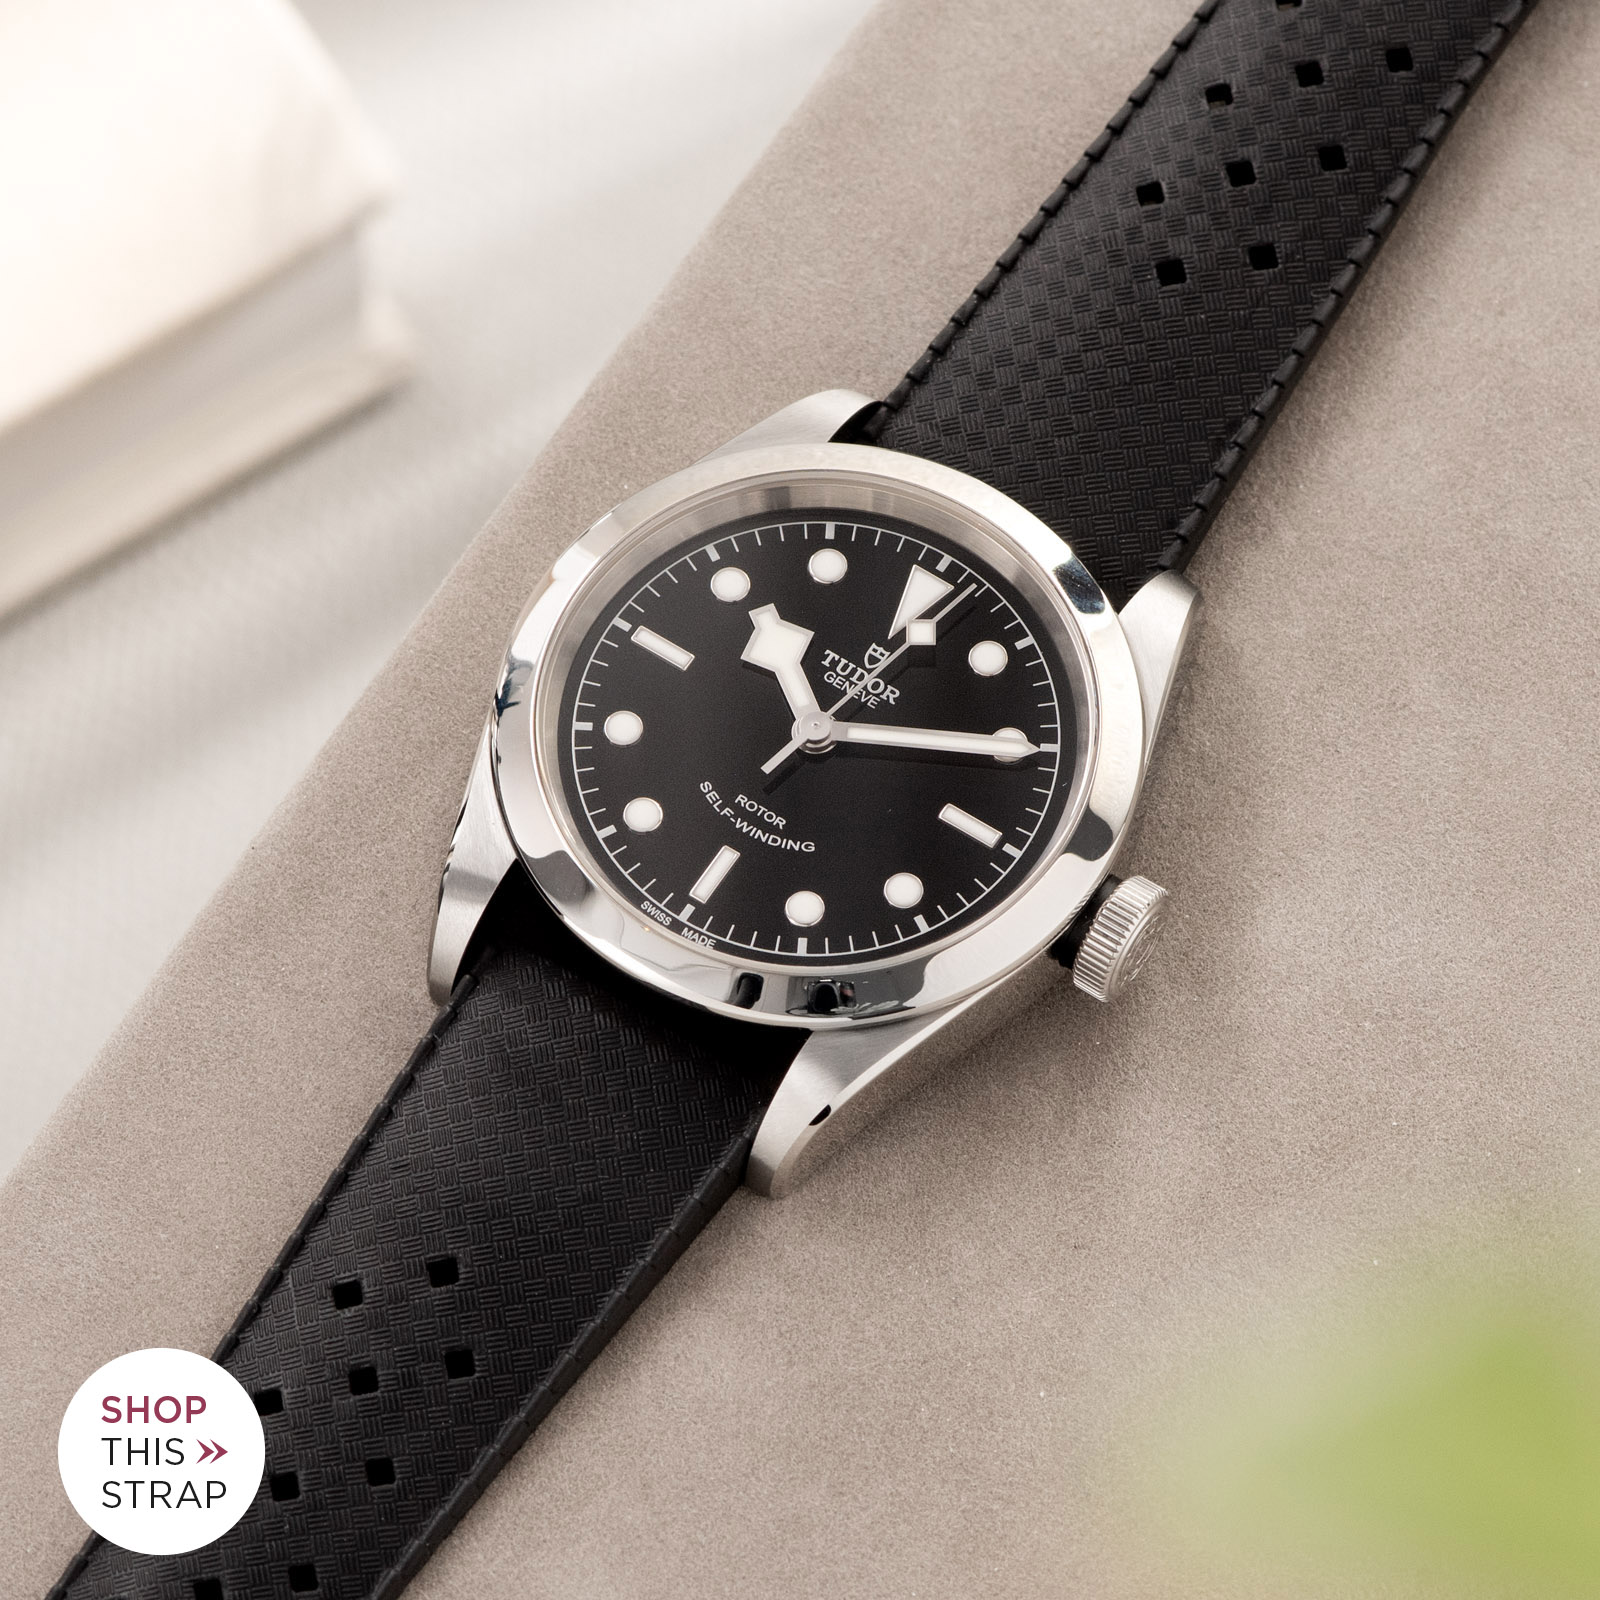 Bulang and Sons_Strap Guide_Tudor Heritage BlackBay 411_Nautic Basket Weave Black Rubber Style Watch Strap